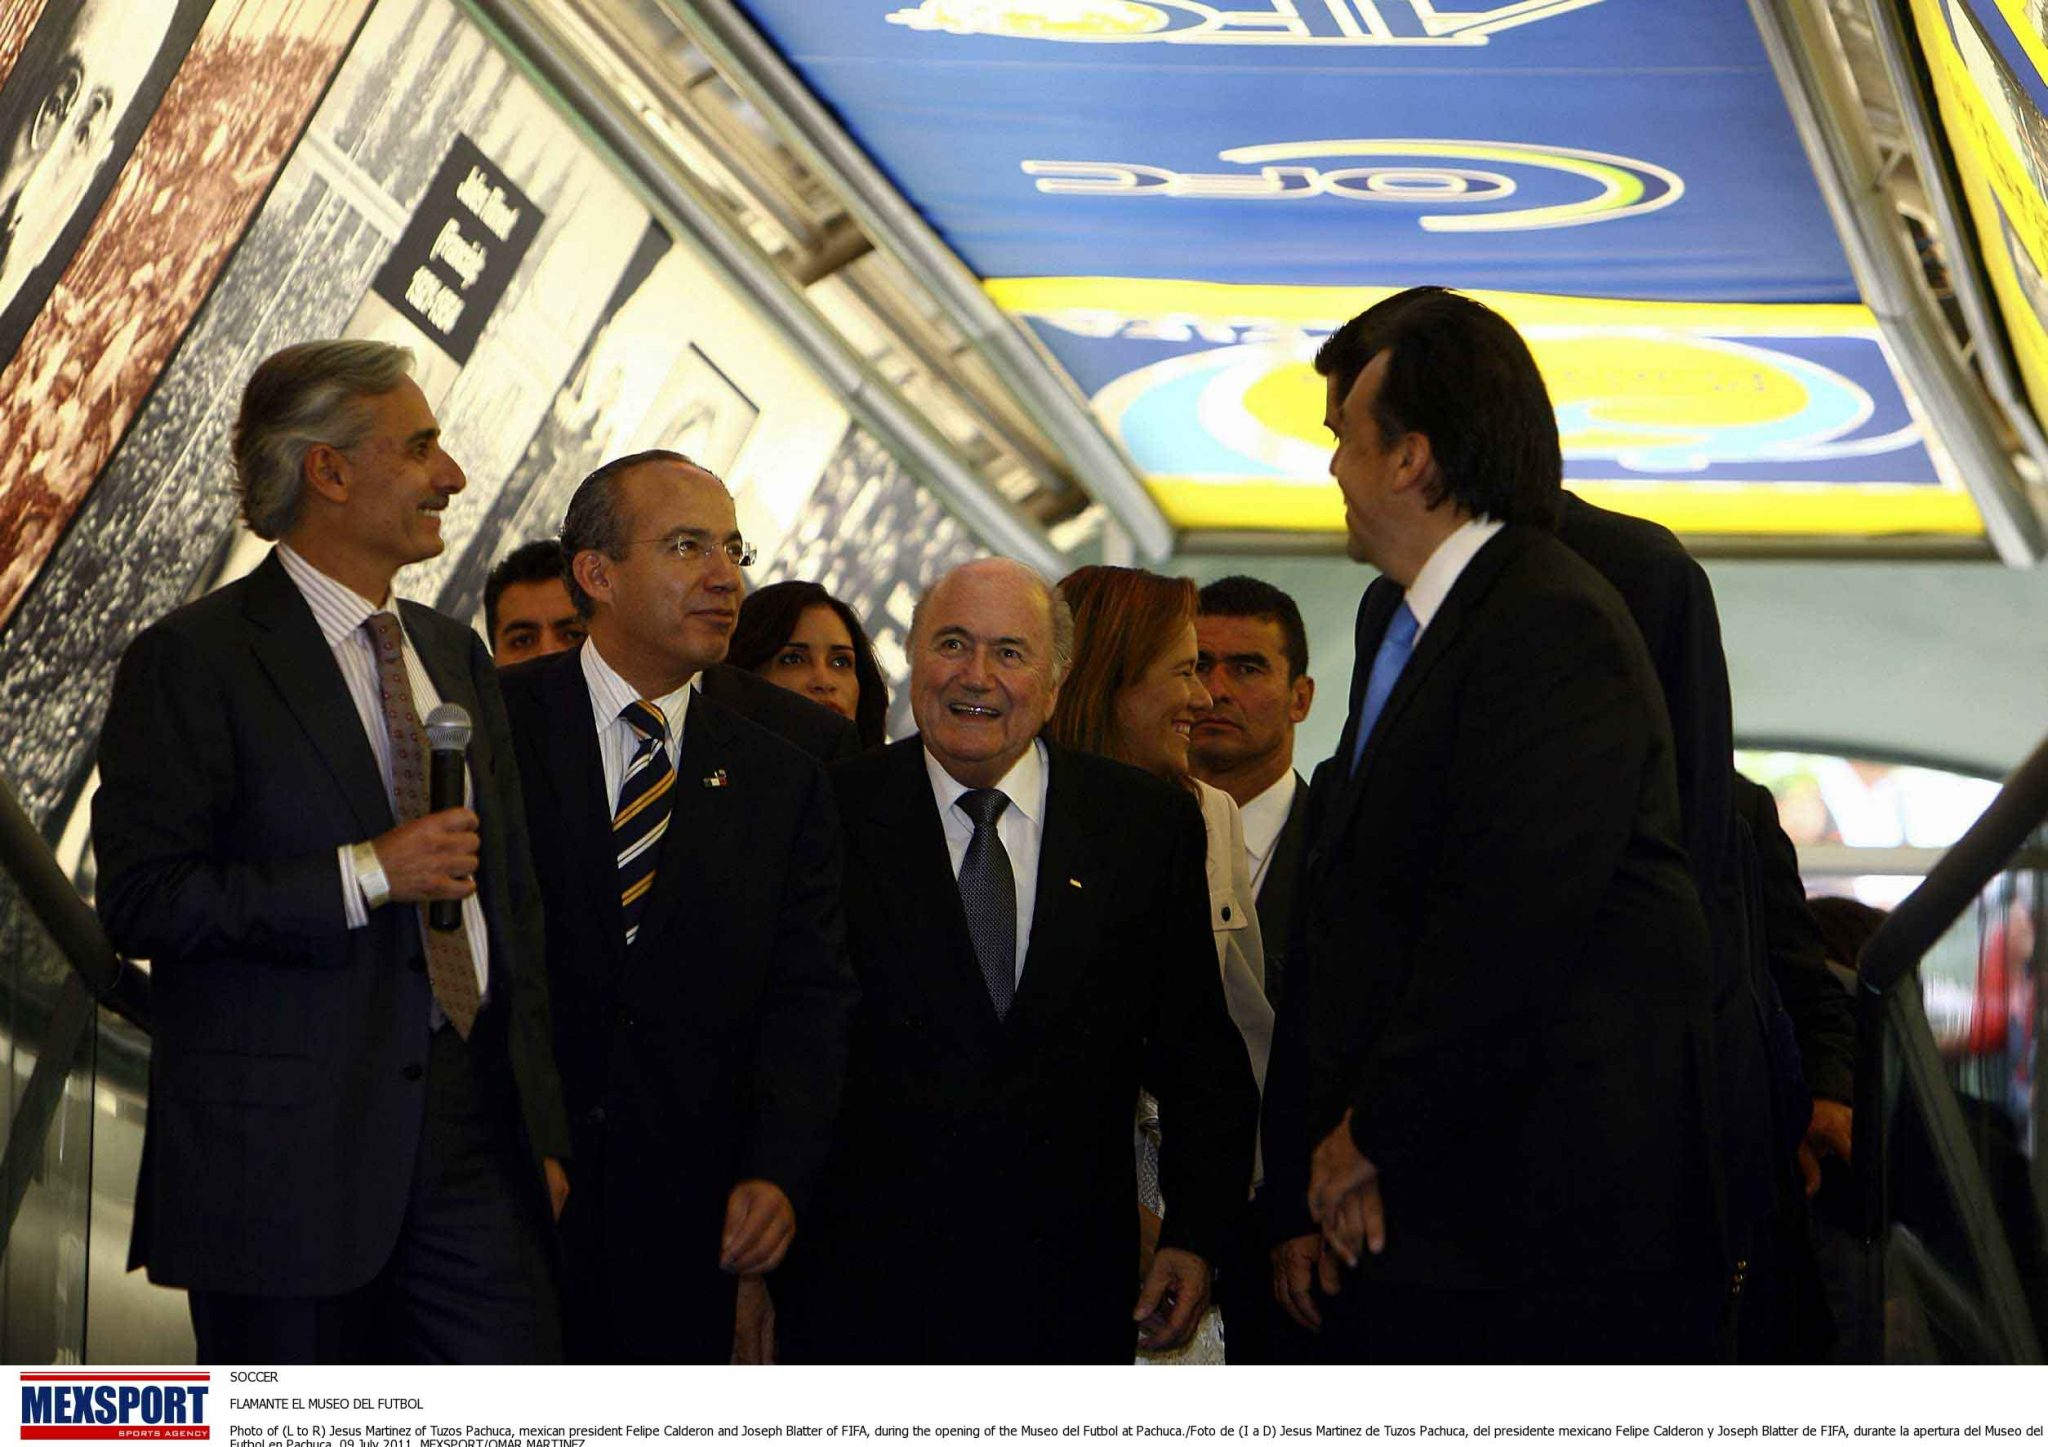 SOCCER  FLAMANTE EL MUSEO DEL FUTBOL  Photo of (L to R) Jesus Martinez of Tuzos Pachuca, mexican president Felipe Calderon and Joseph Blatter of FIFA, during the opening of the Museo del Futbol at Pachuca./Foto de (I a D) Jesus Martinez de Tuzos Pachuca, del presidente mexicano Felipe Calderon y Joseph Blatter de FIFA, durante la apertura del Museo del Futbol en Pachuca. 09 July 2011. MEXSPORT/OMAR MARTINEZ